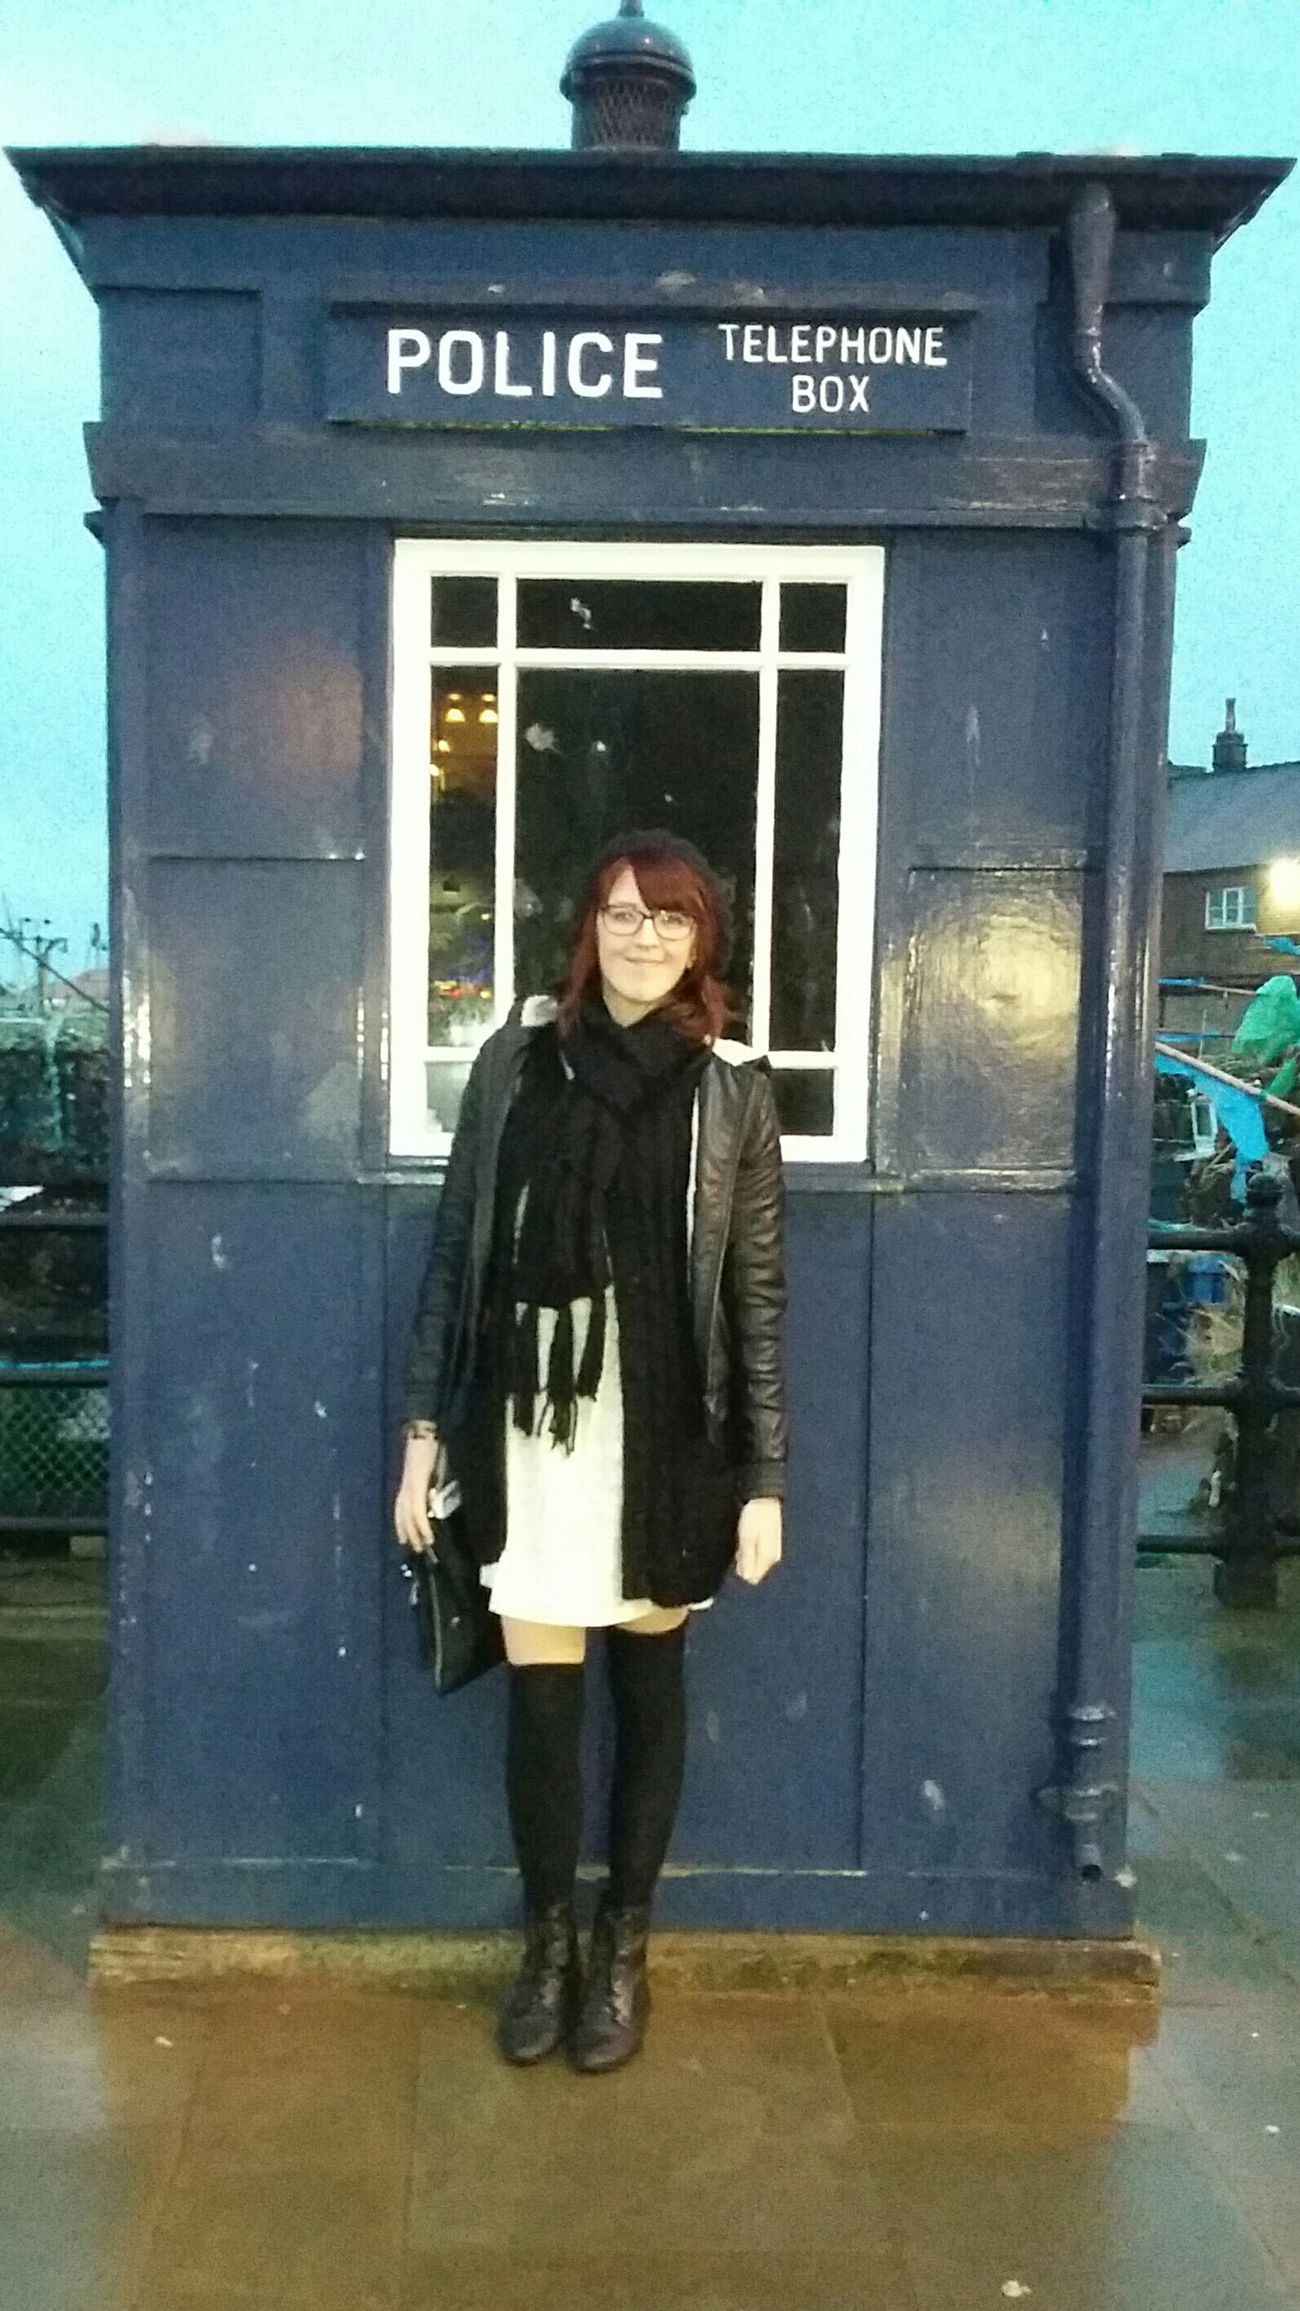 Police Telephone Box Old Telephone Box Blue Telephone Box Police Box (TARDIS) Police Box Blue Box Smiling Like A Freak Scarf ❄✌ Freezing ❄ Coldness Uk Weather Next To The Sea